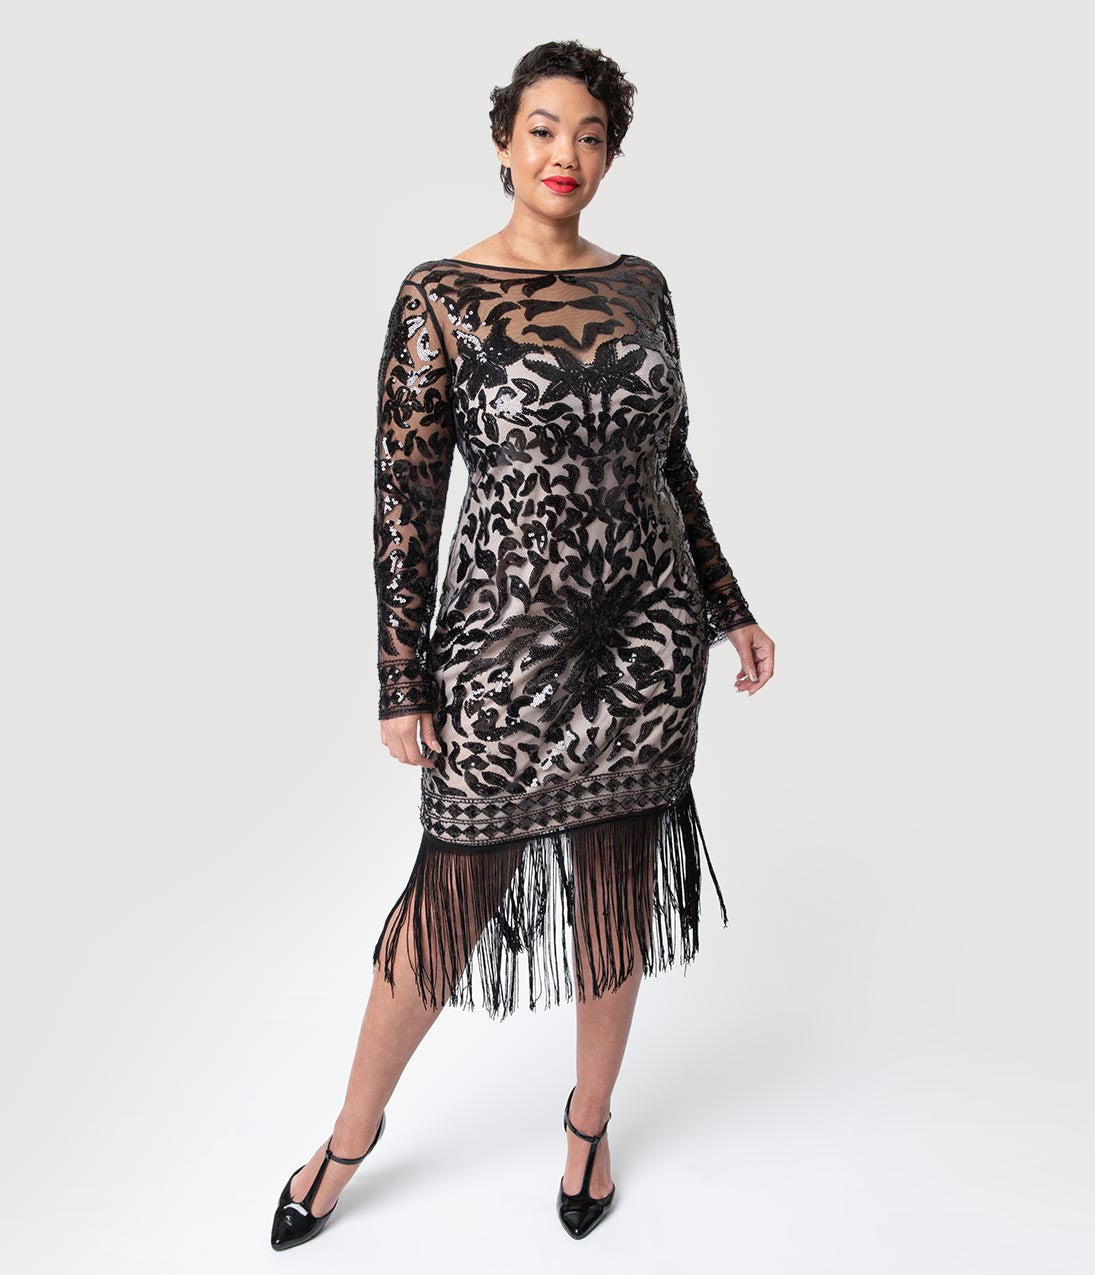 1920s Fashion & Clothing | Roaring 20s Attire Unique Vintage Plus Size 1920S Beige  Black Sequin Long Sleeve Zulma Cocktail Dress $98.00 AT vintagedancer.com